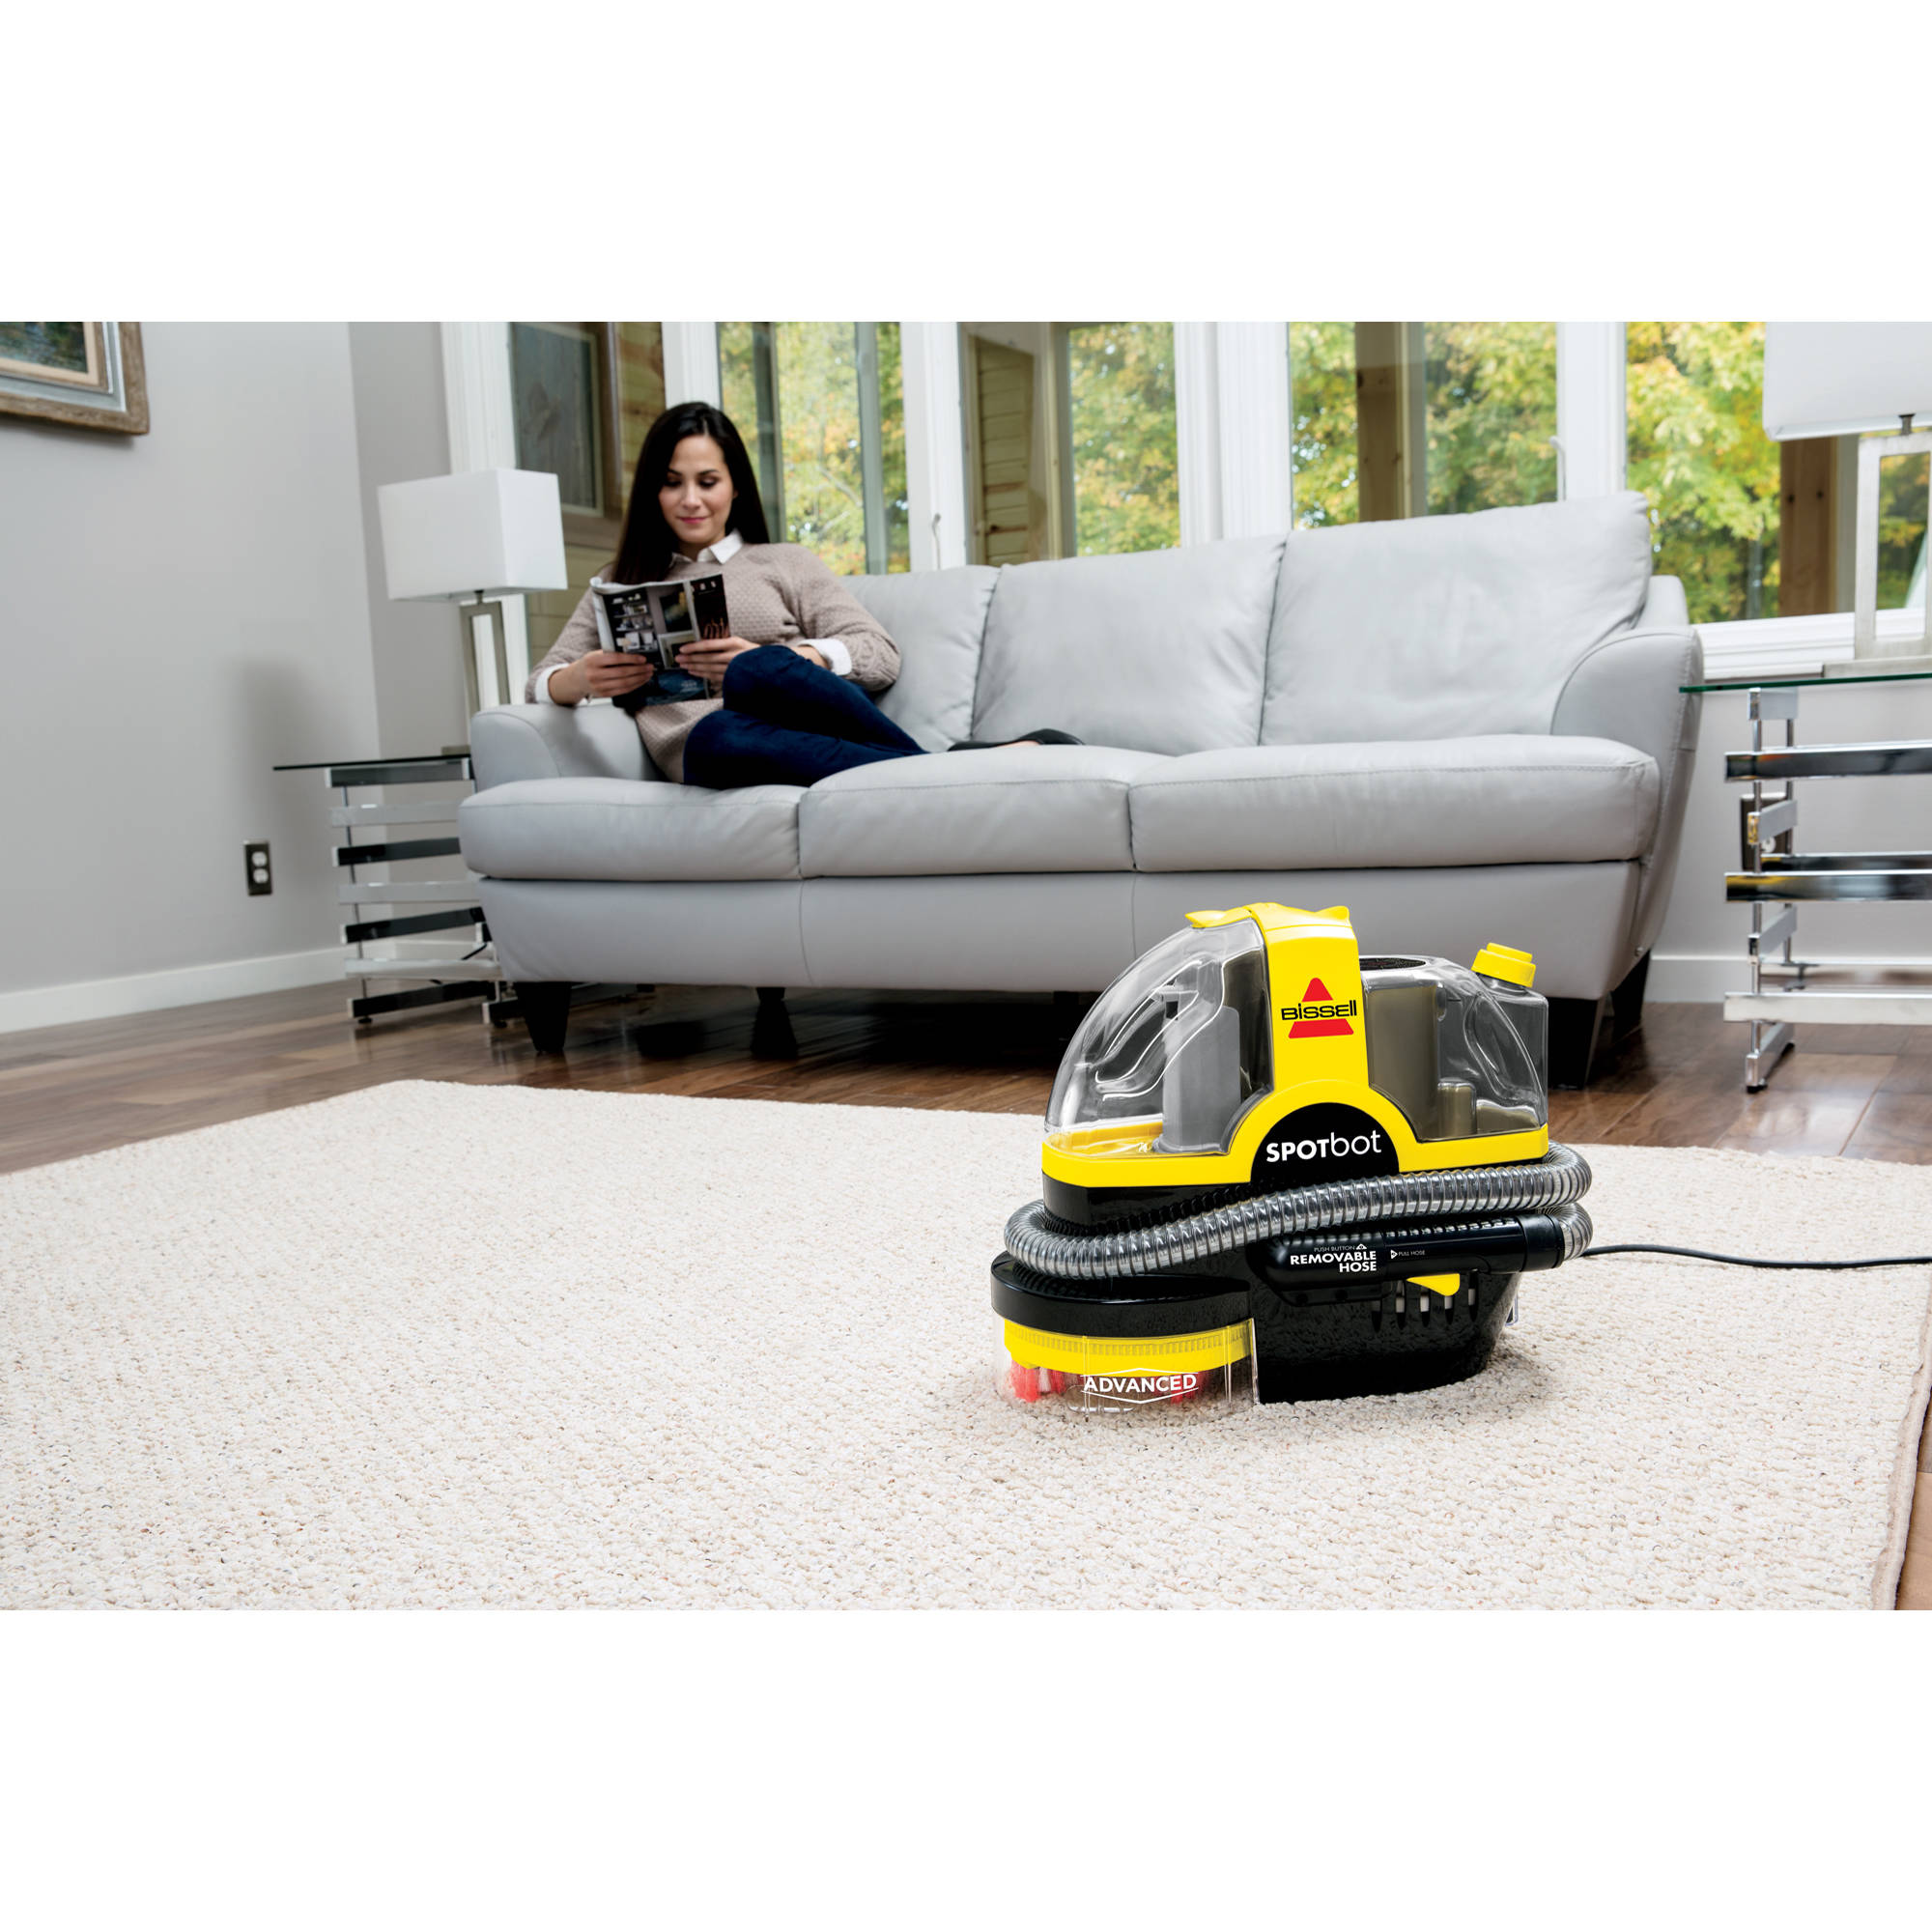 Bissell spotbot pet portable spot and stain cleaner 33n8a walmart fandeluxe Choice Image